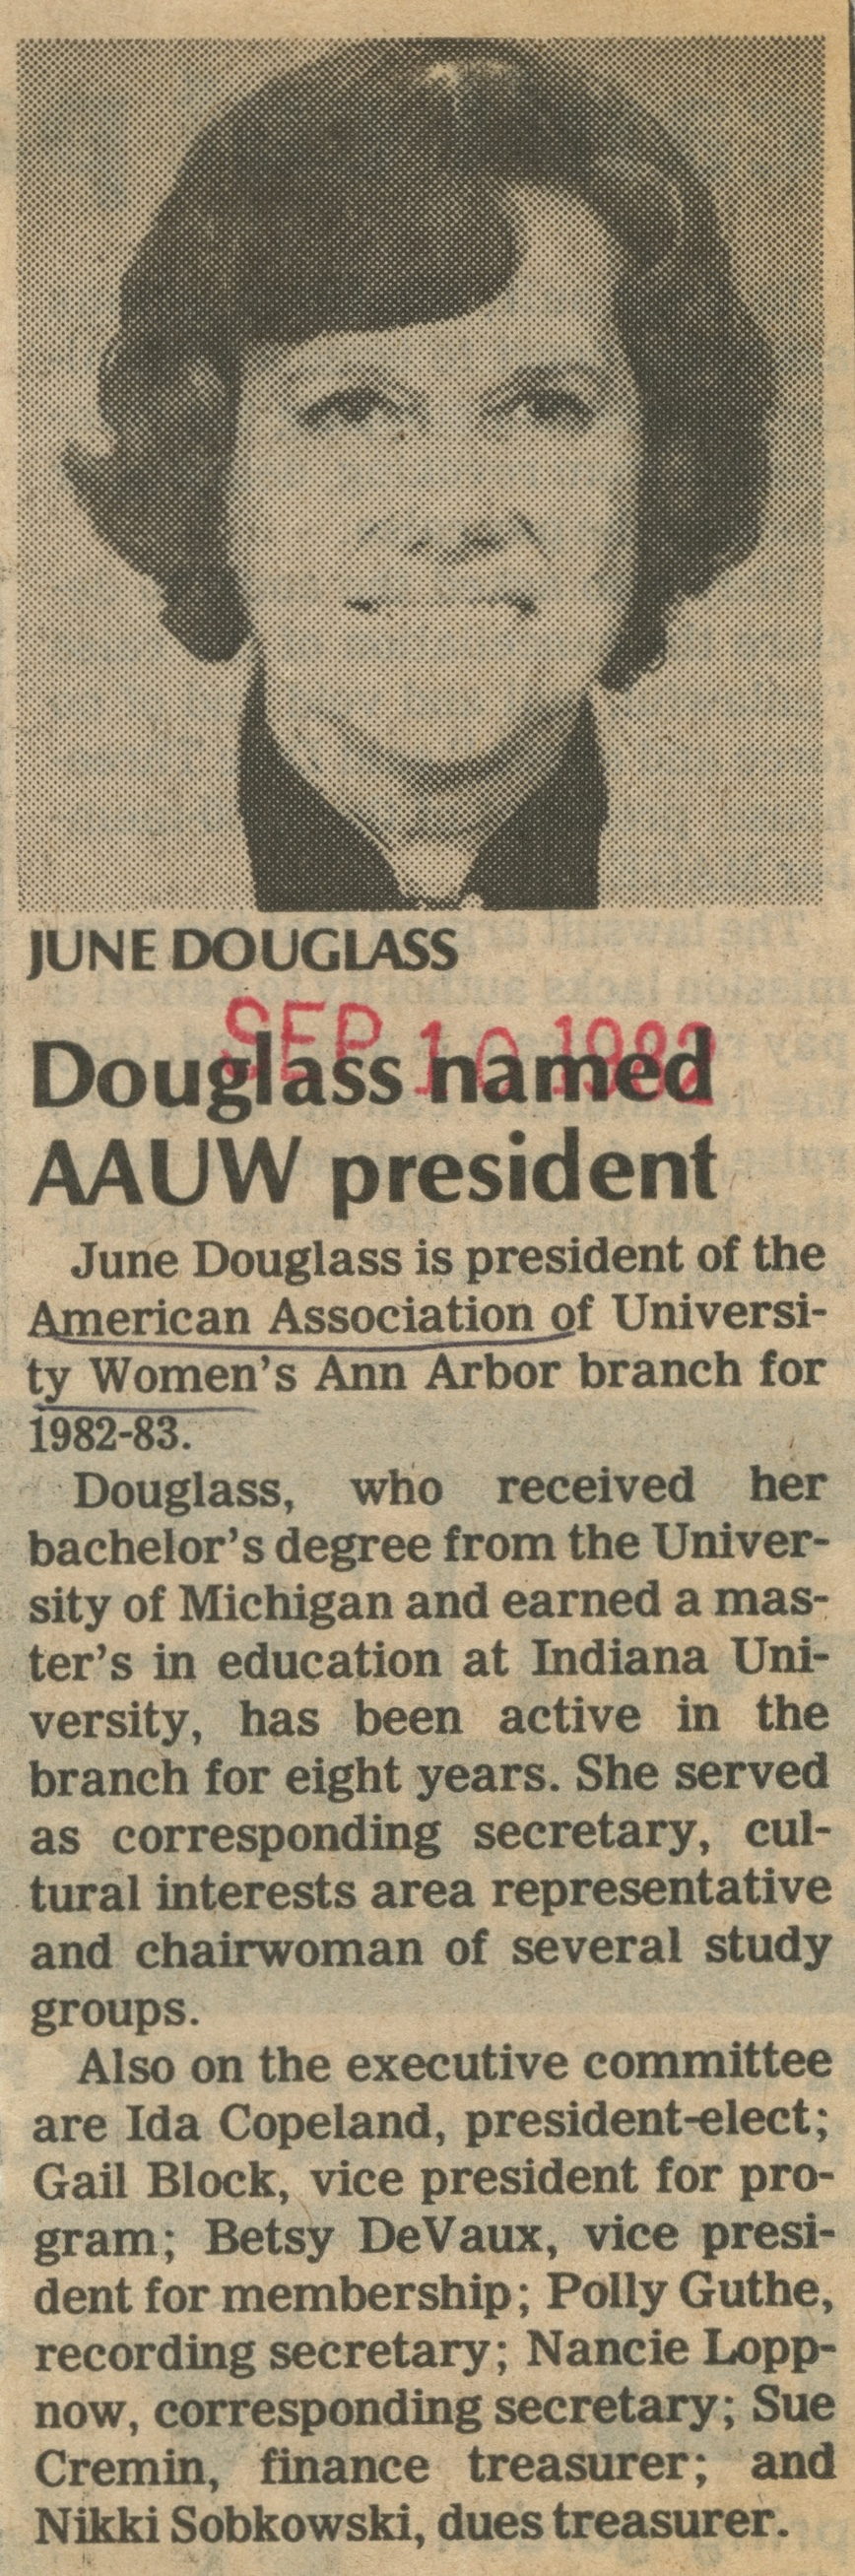 Douglass Named AAUW President image